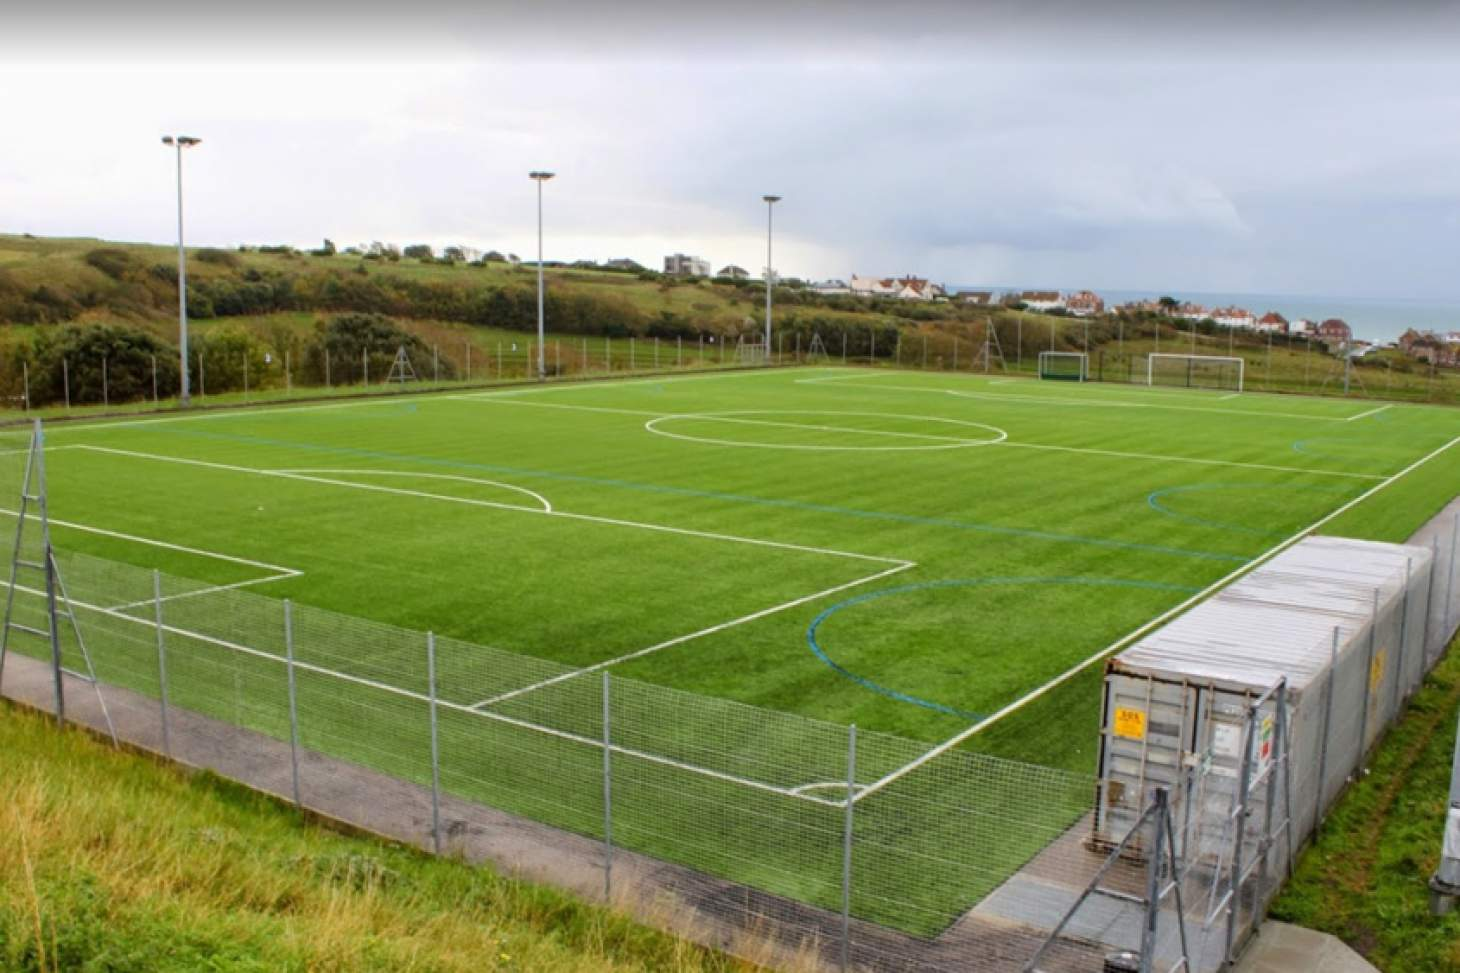 Stanley Deason Leisure Centre 7 a side | 3G Astroturf football pitch